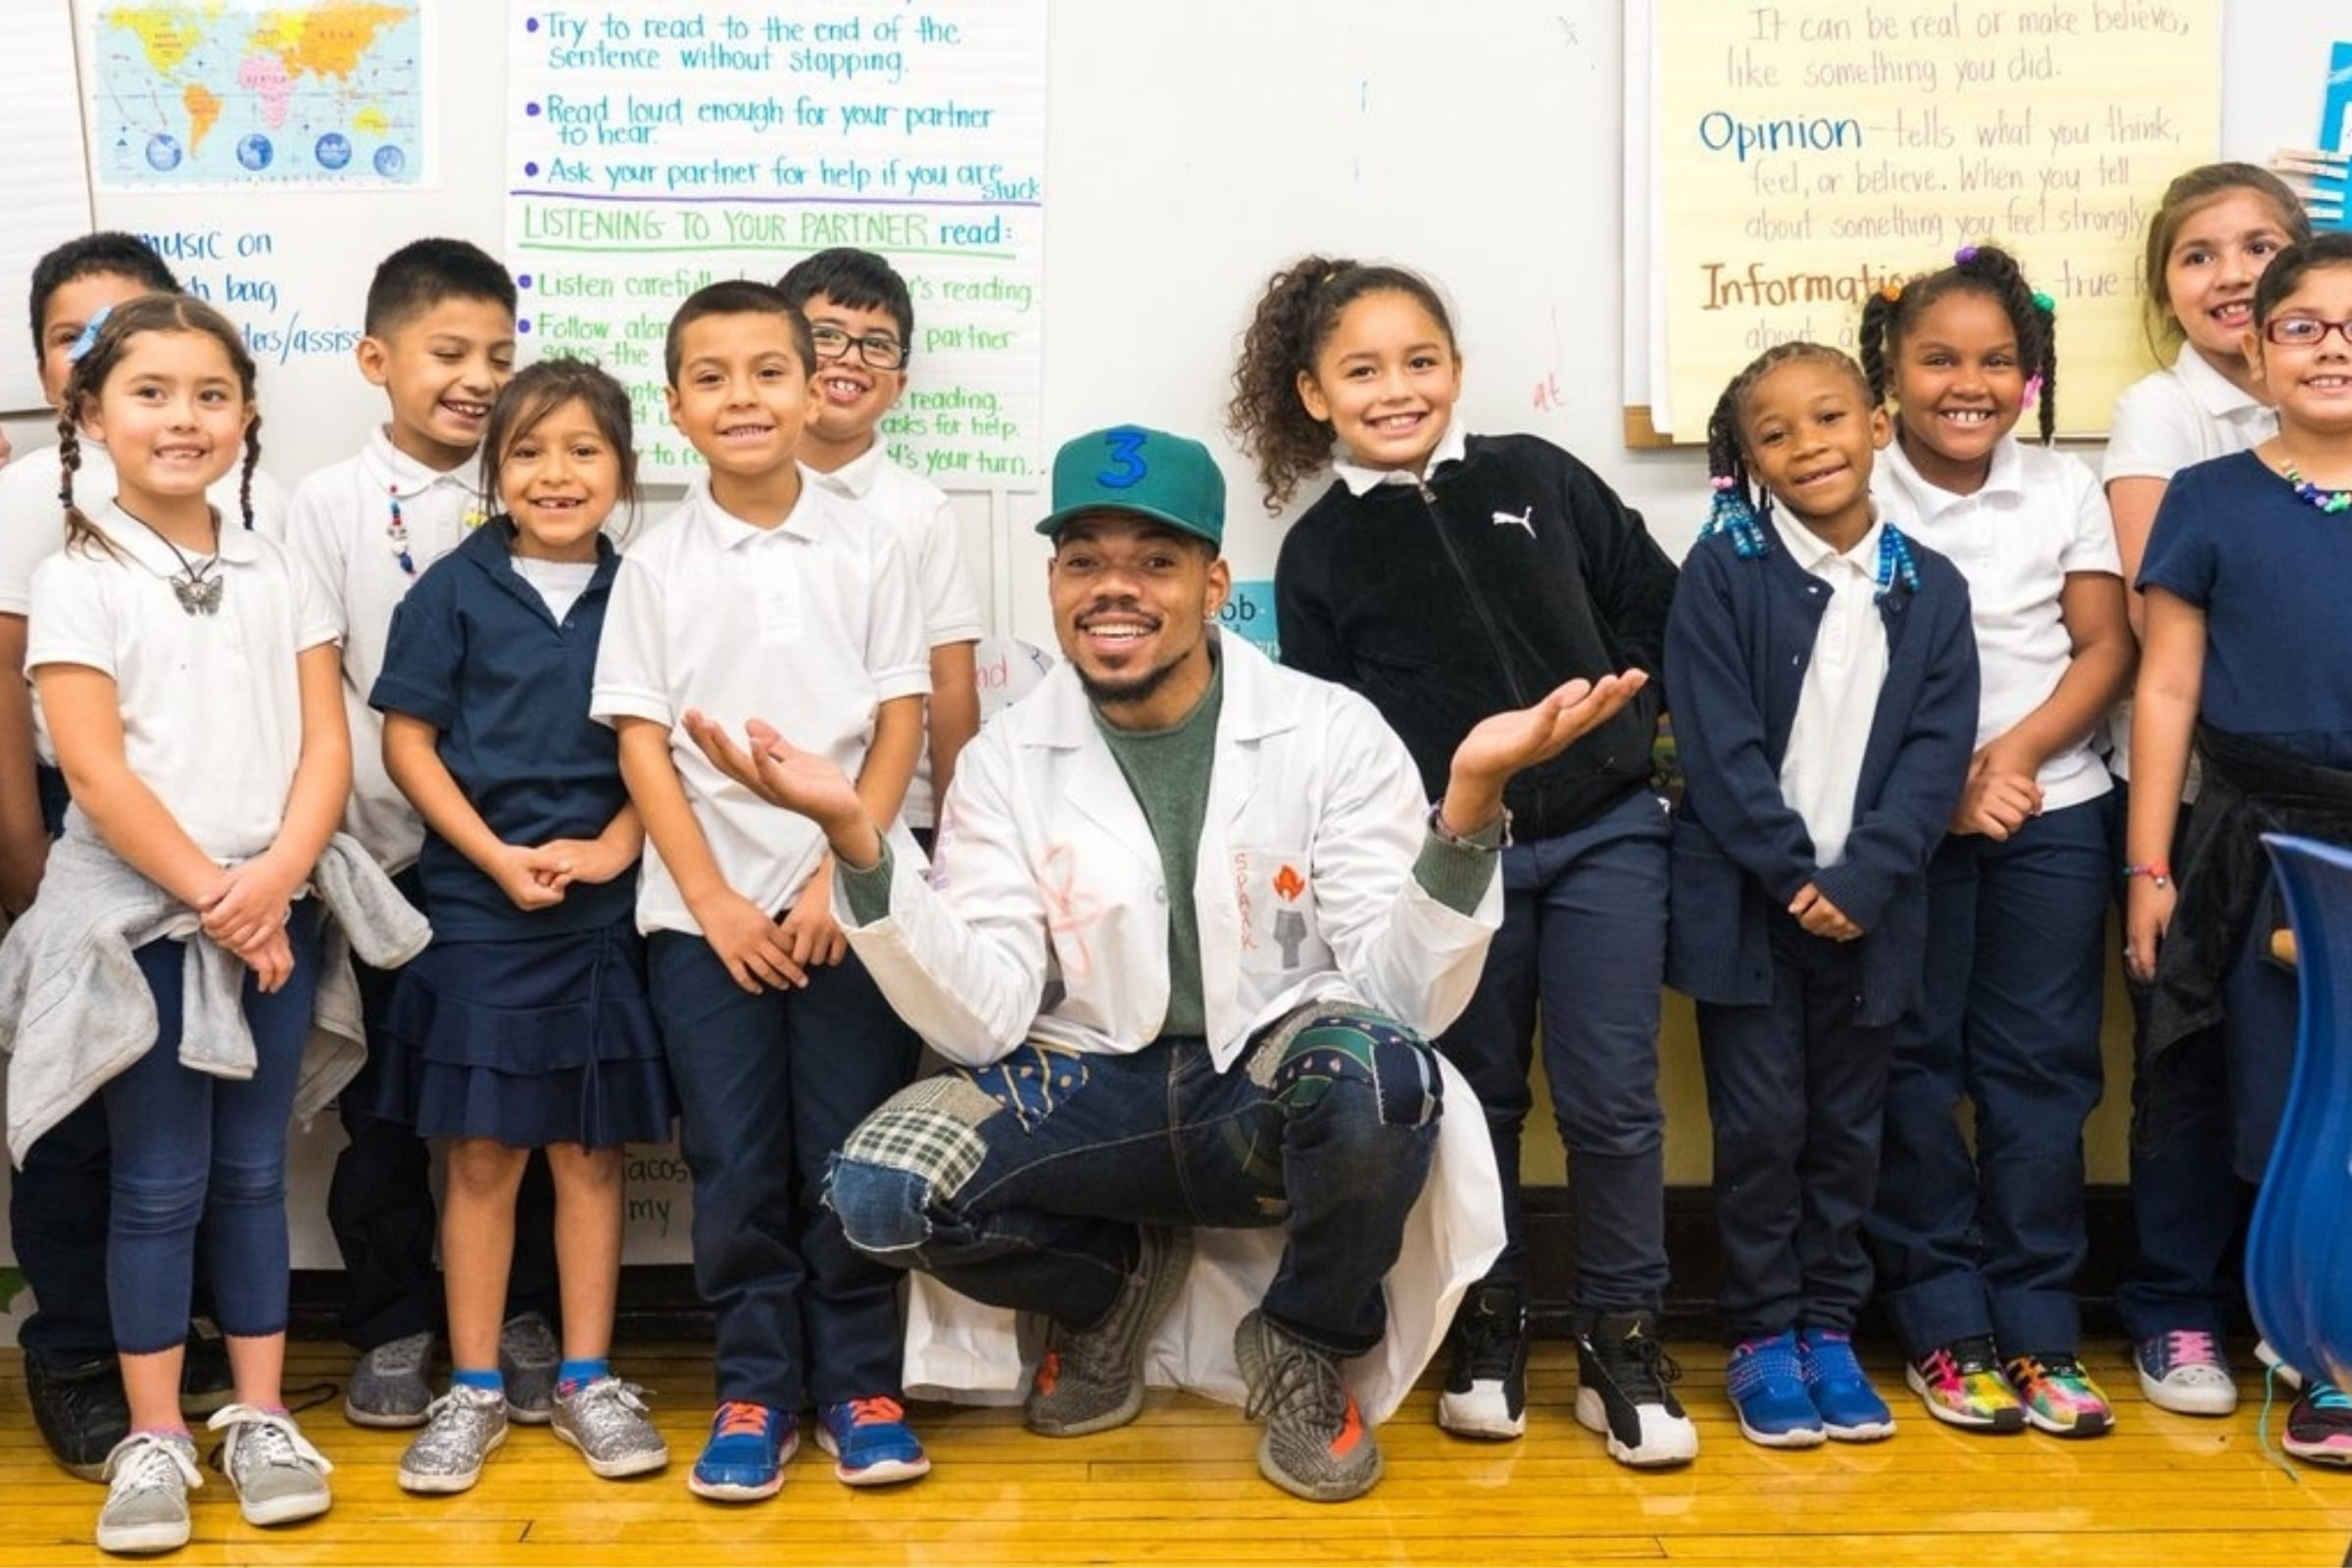 home-chance-the-rapper-education-magazine-antidote